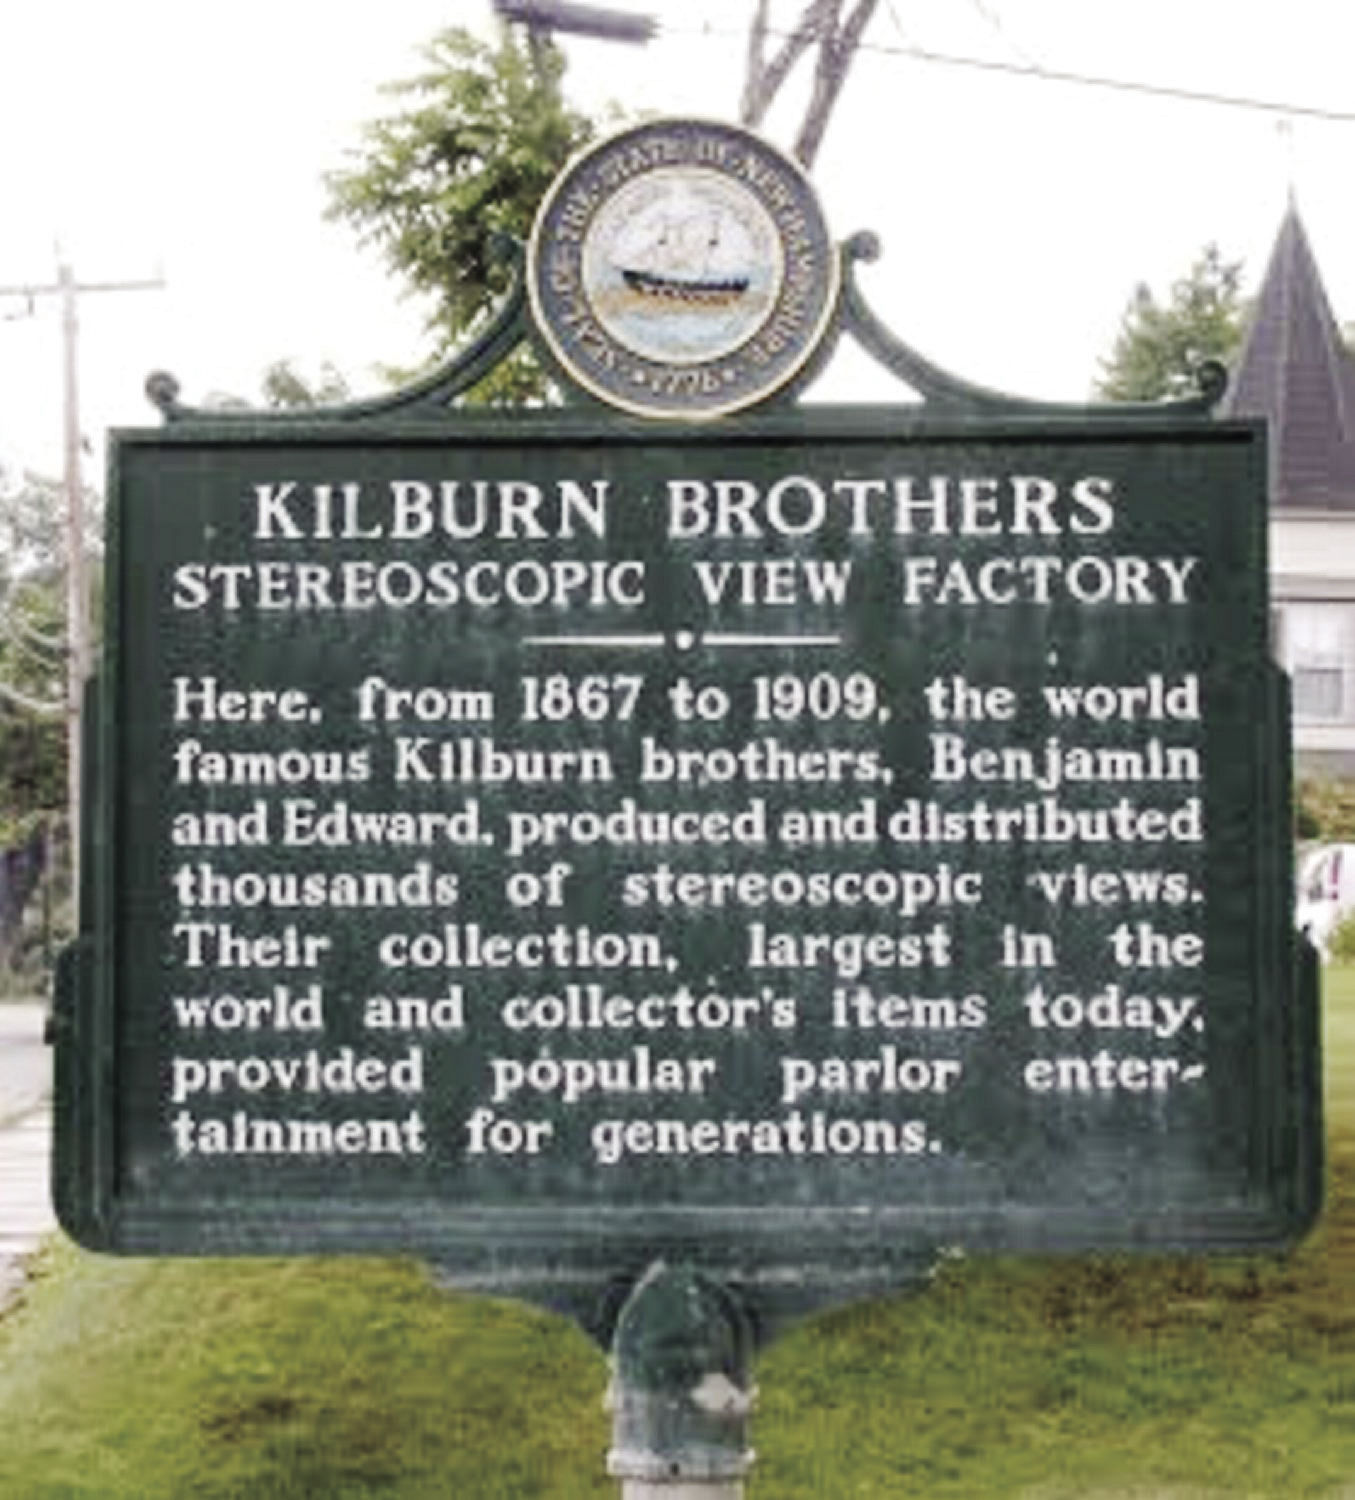 Roadside History: Kilburn Brothers Stereoscopic View Factory offered early 3D technology